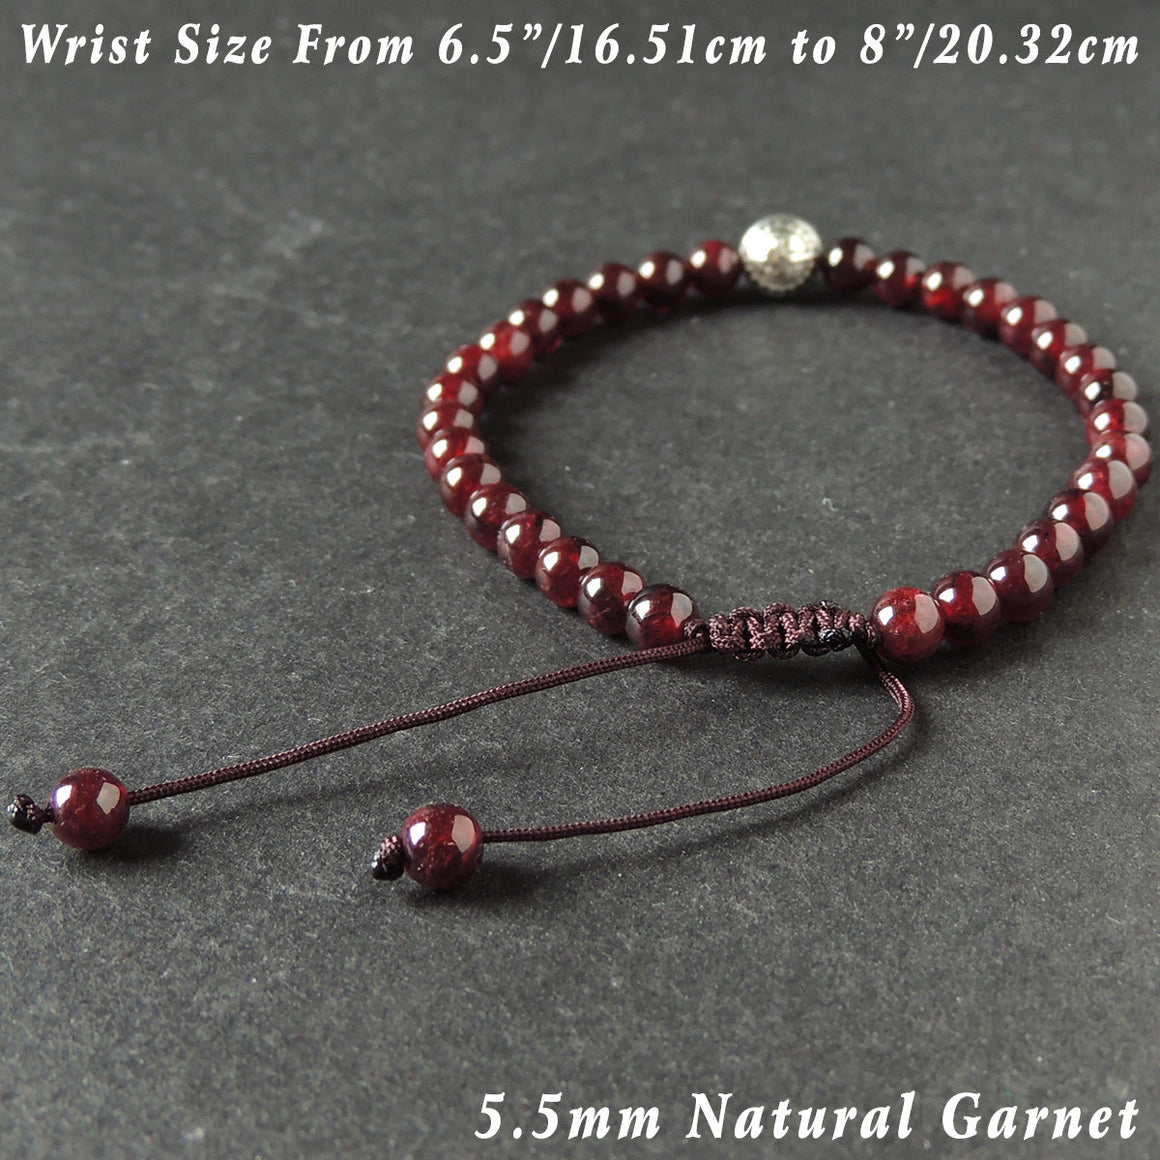 5.5mm Garnet Adjustable Braided Bracelet with Tibetan Silver 'Ping An' Protection Bead - Handmade by Gem & Silver TSB289